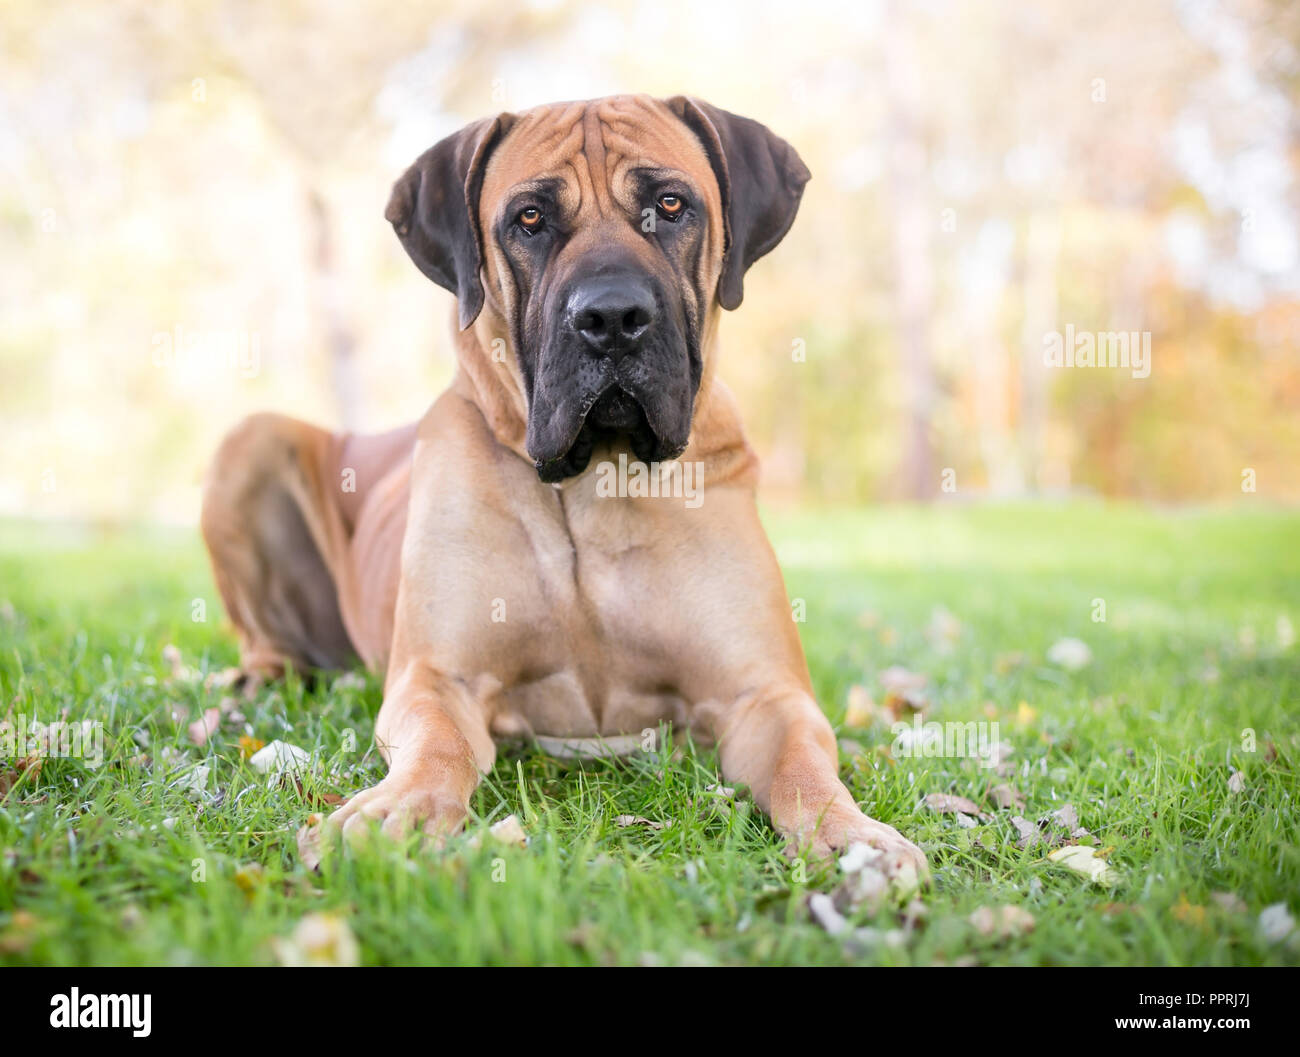 A Boerboel dog with a serious expression lying in the grass - Stock Image